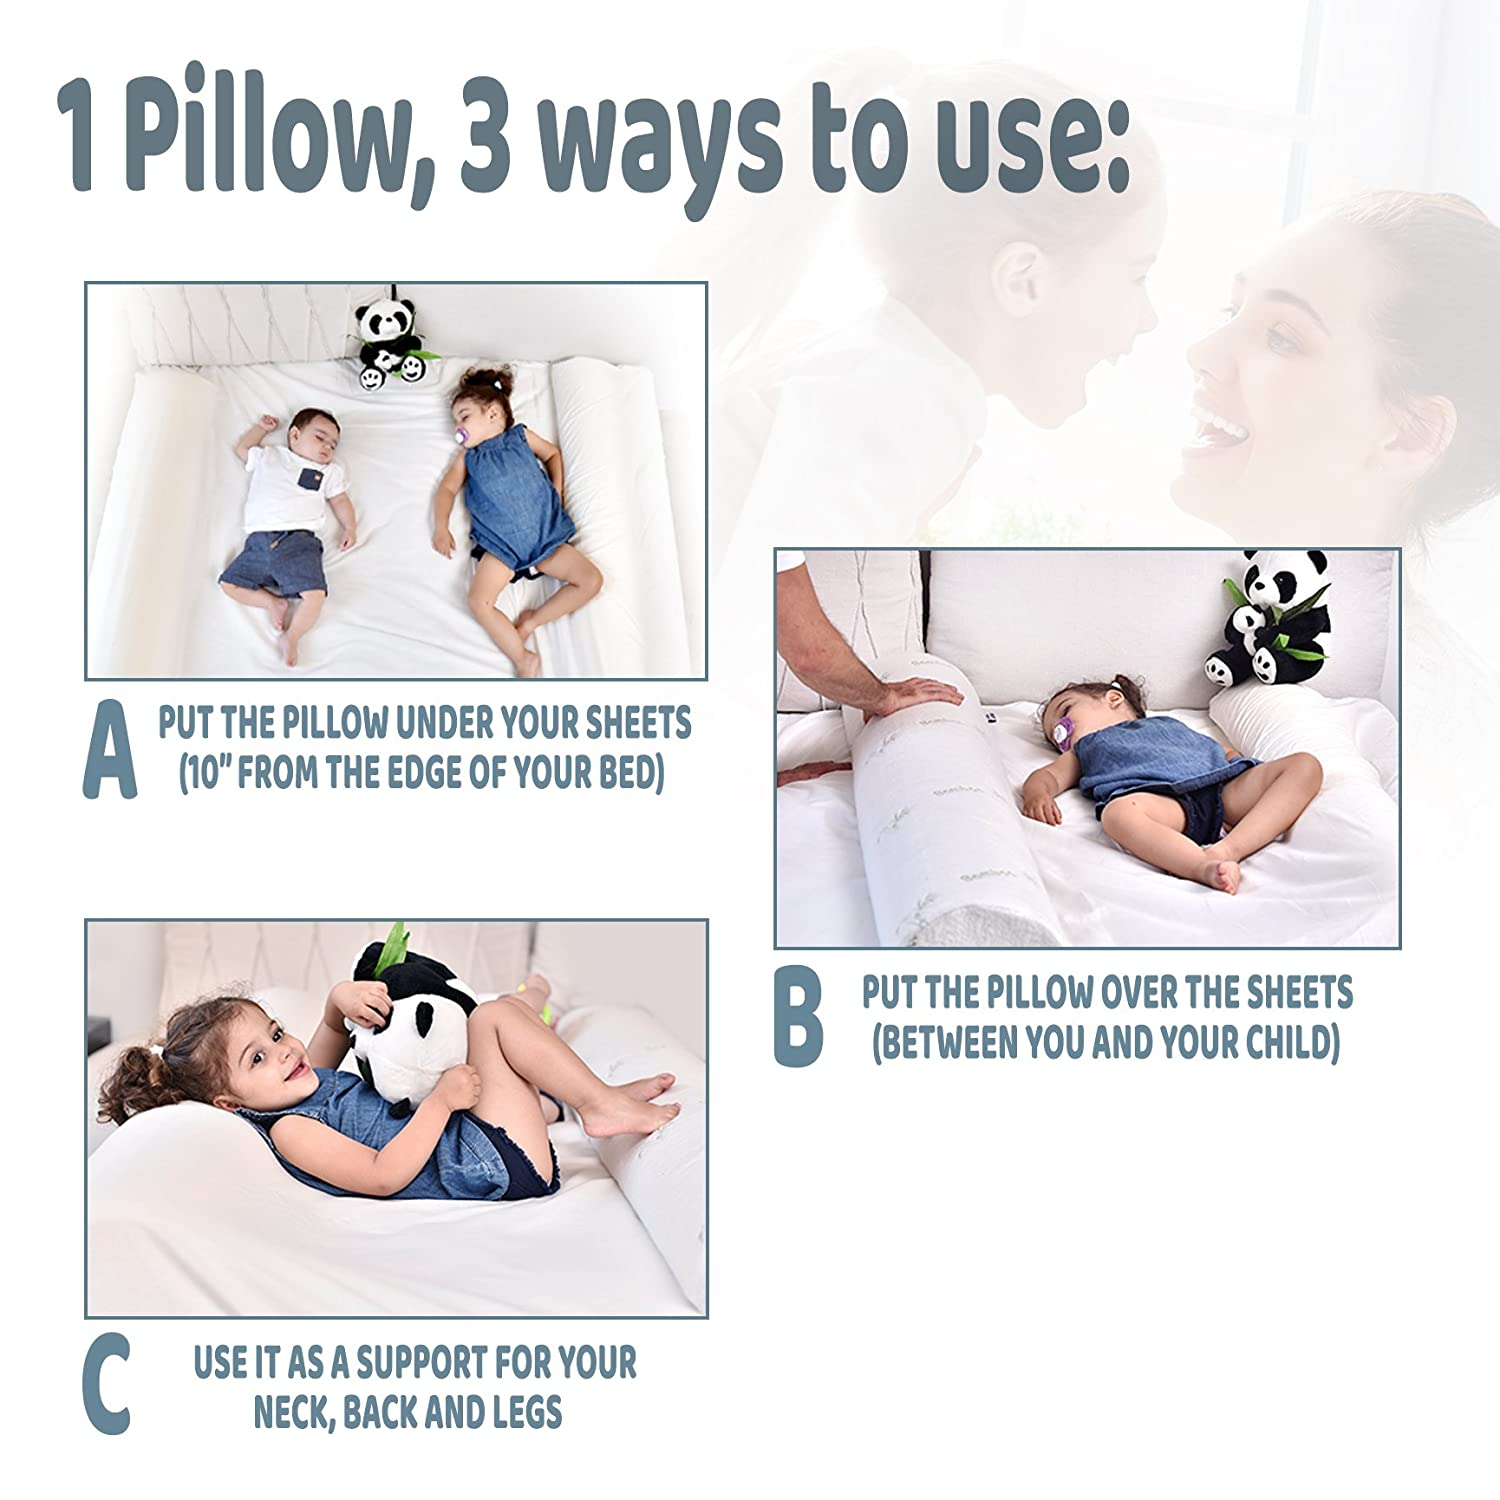 [XL - Bamboo] DreamyPanda Safety Bed Rail Bumper Pillow - Bamboo Cover and Portable Foam Guard for Toddlers, Kids, and Adults (Baby Pink)